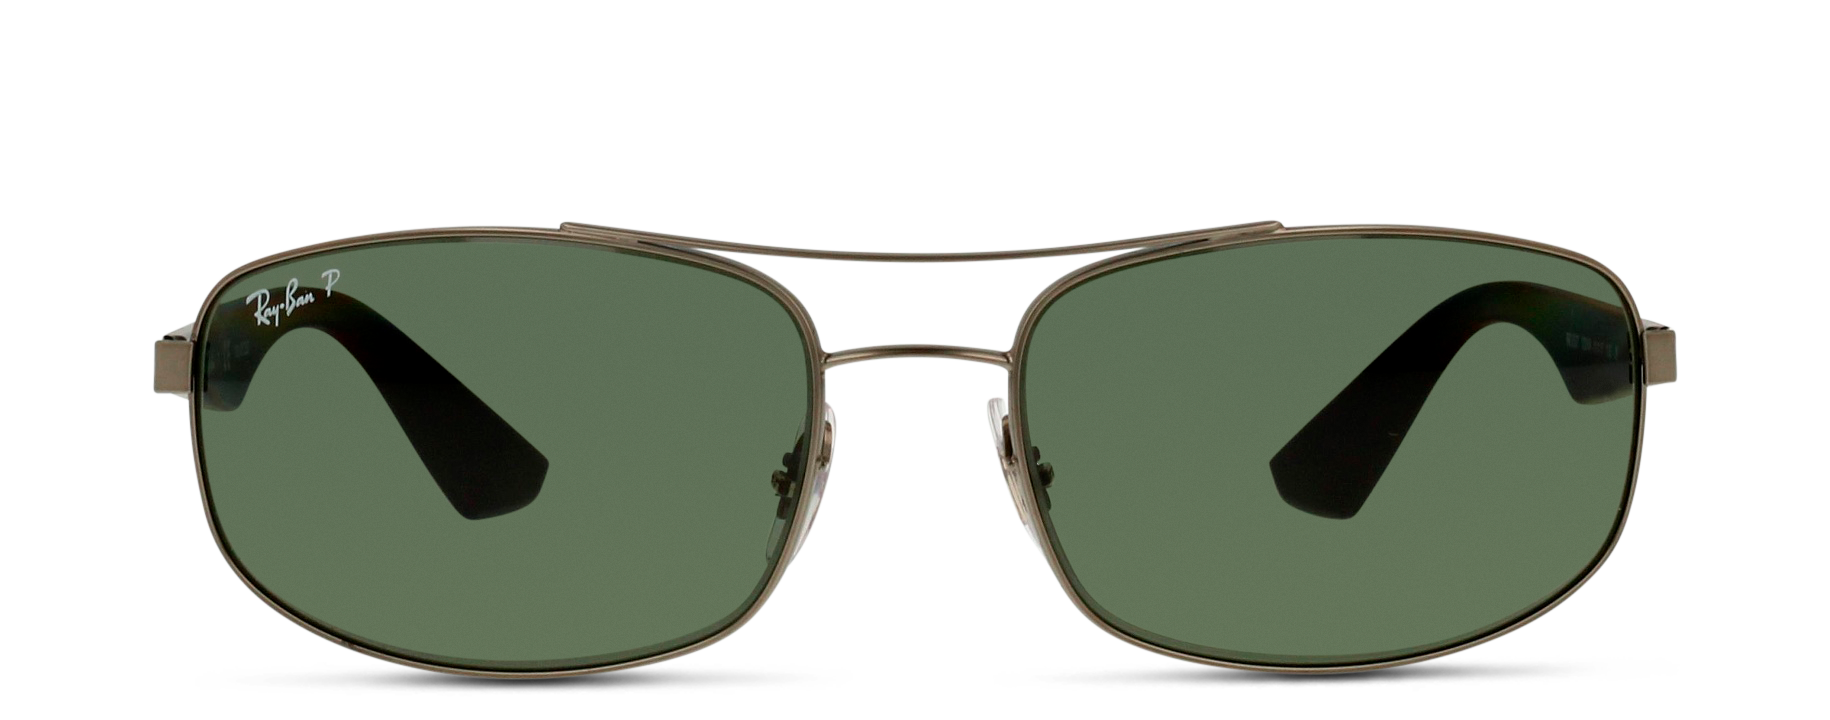 Front Ray-Ban 0RB3527/029/9A/6117/135 Sølv